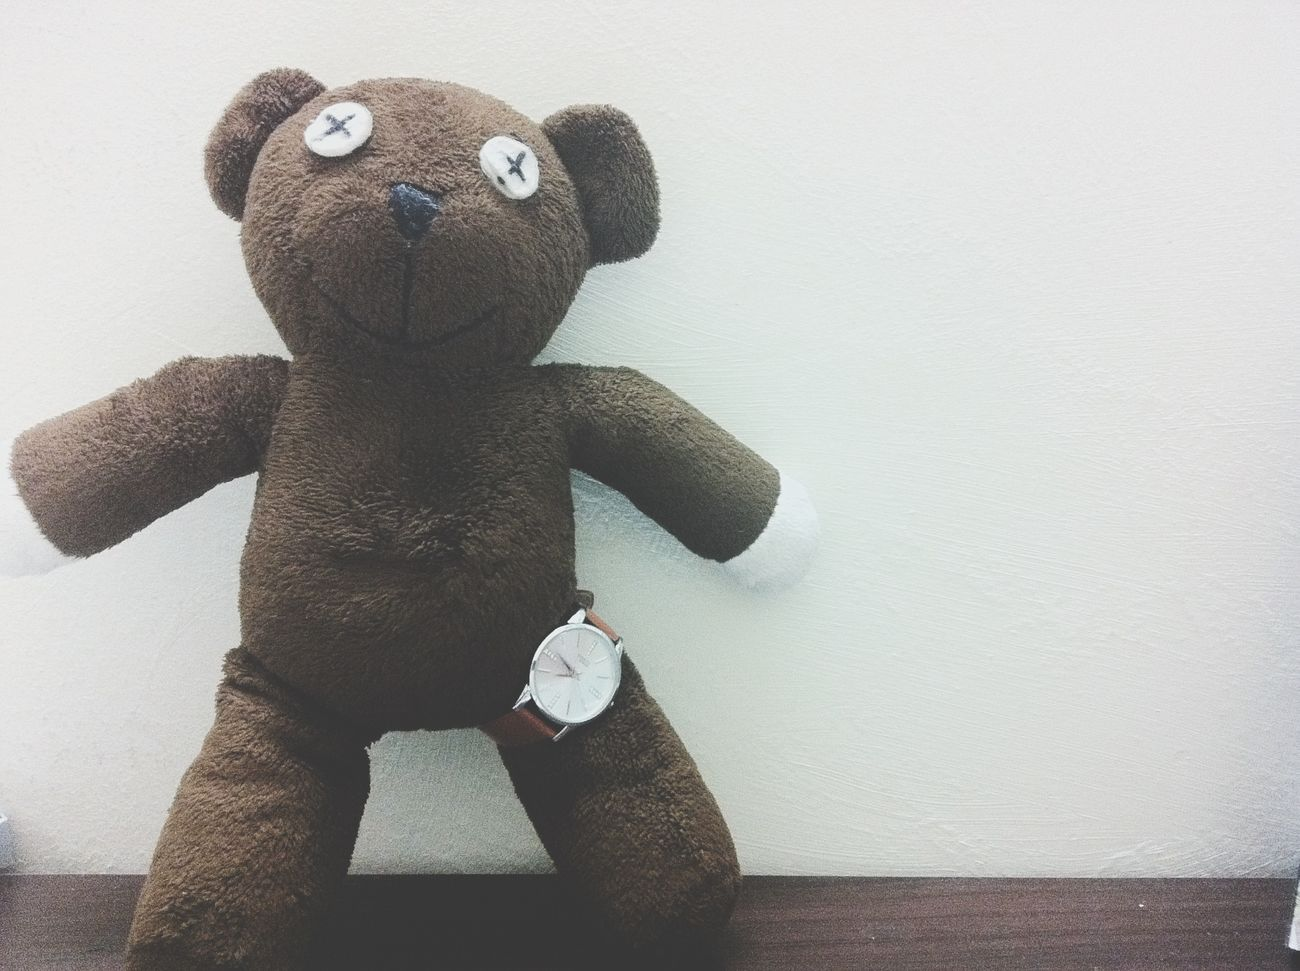 Teddy Watch Vincci